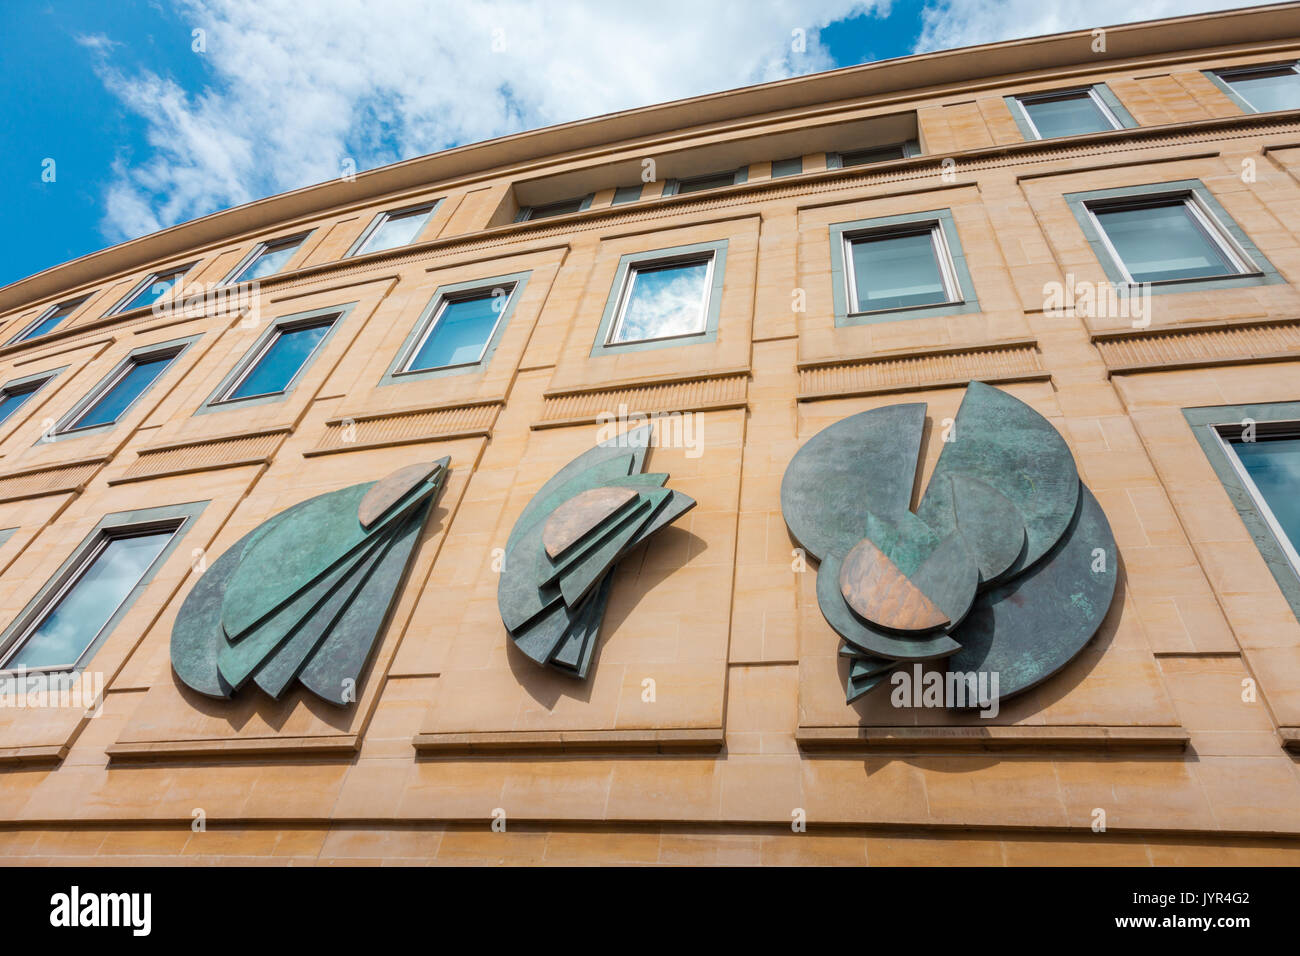 Building facade and bas relief sculpture on the outside wall, Clarence Street, Cheltenham, Glocestershire UK Stock Photo